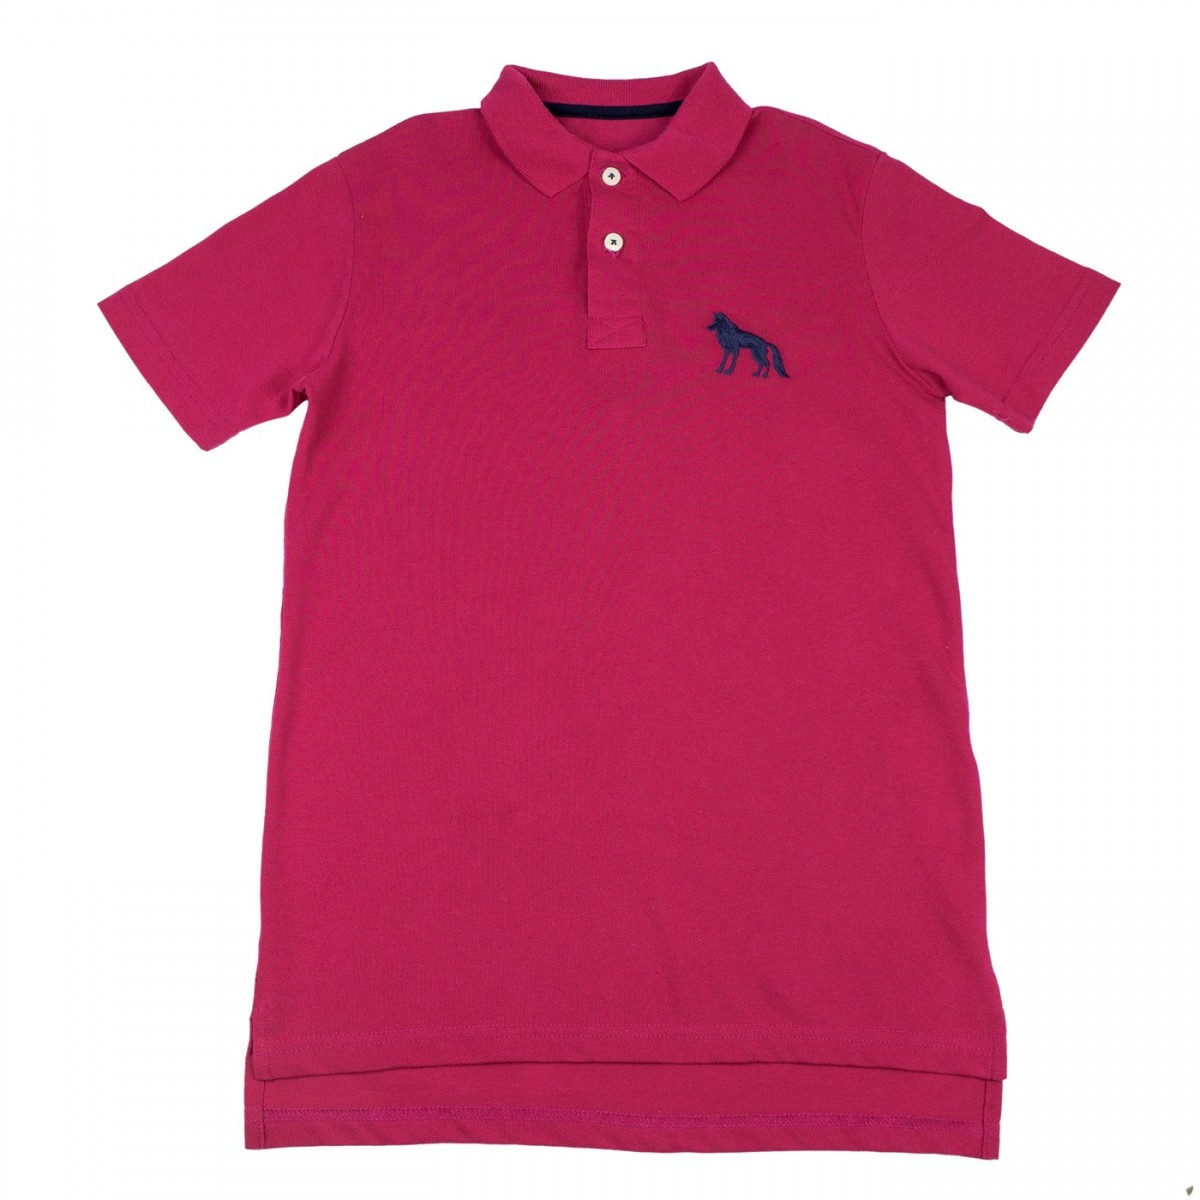 659f428710d96 Bizz Store - Camisa Polo Infantil Masculina Acostamento Royal